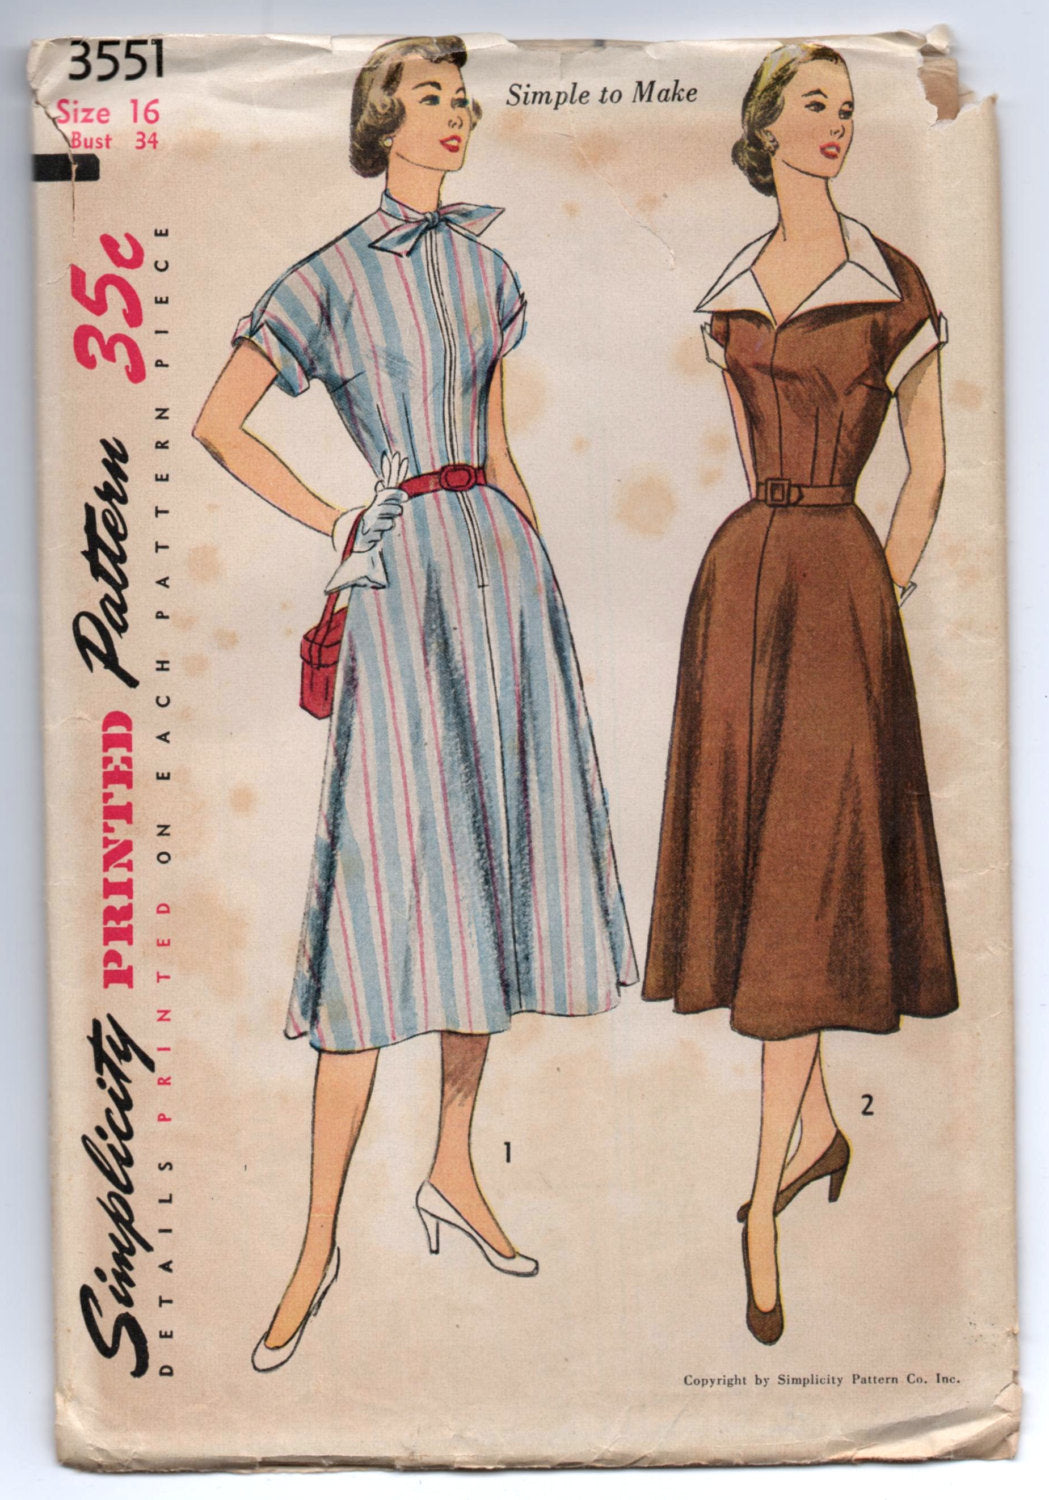 1950's Simplicity One-Piece Day Dress with Large Collar or High Neck Pattern - UNCUT - Bust 34